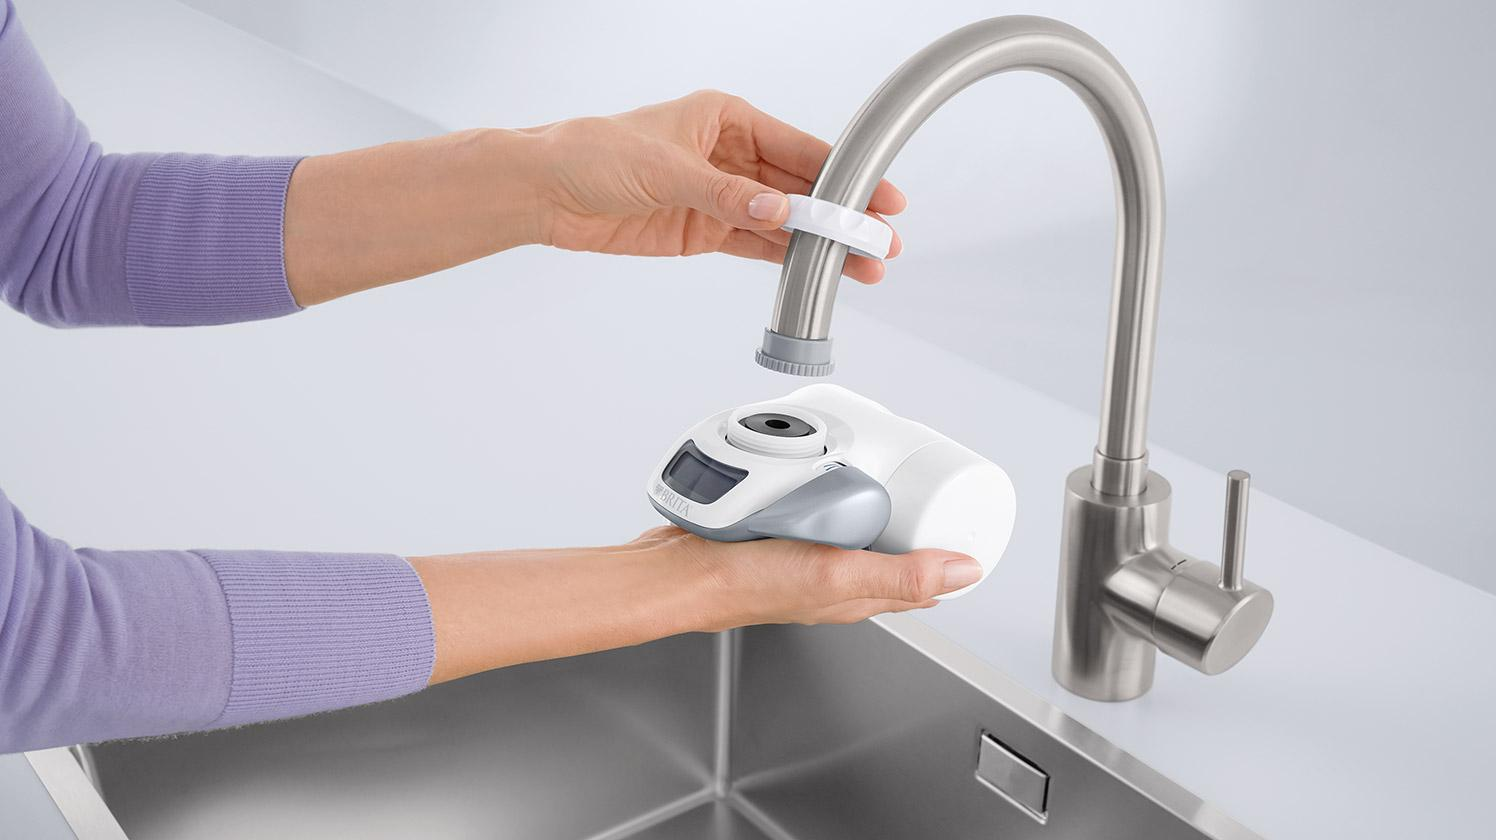 BRITA On Tap water filter adapter on faucet.